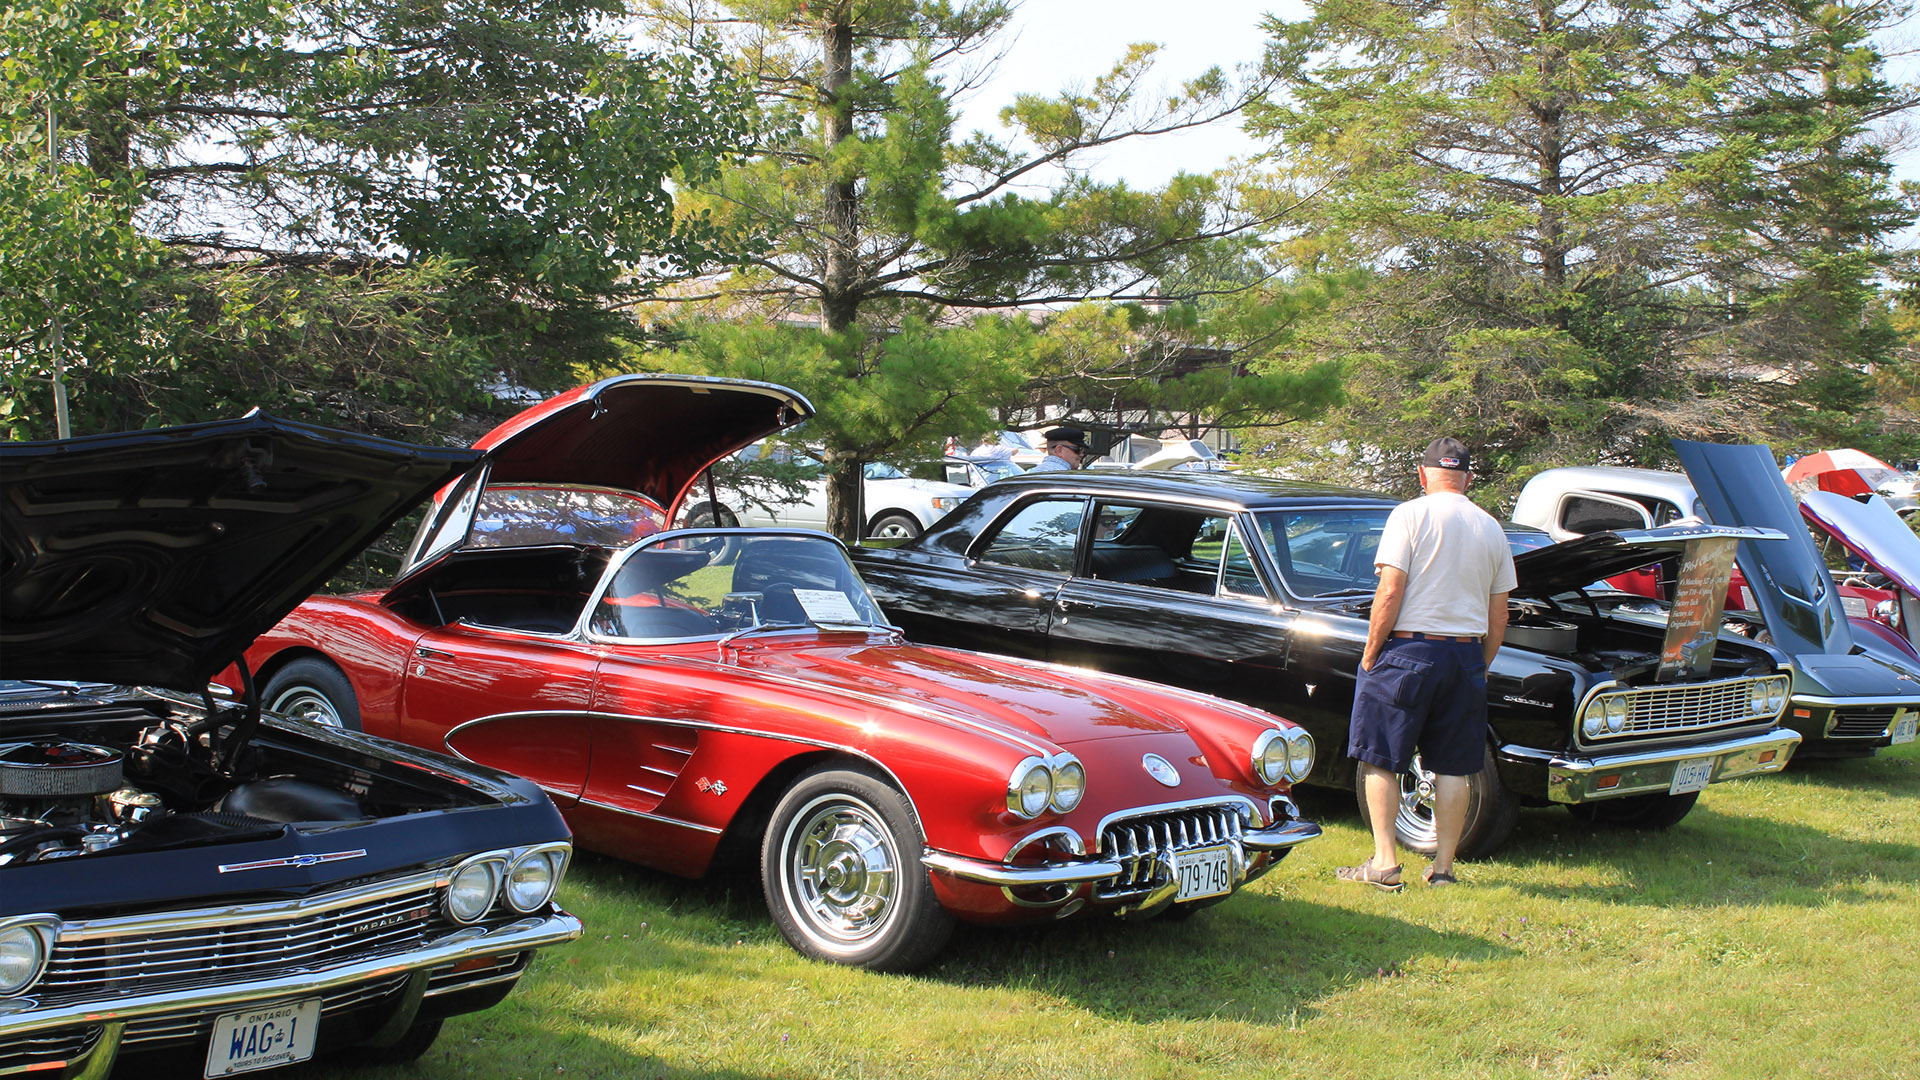 ramara car show - July Events You Don't Want To Miss!